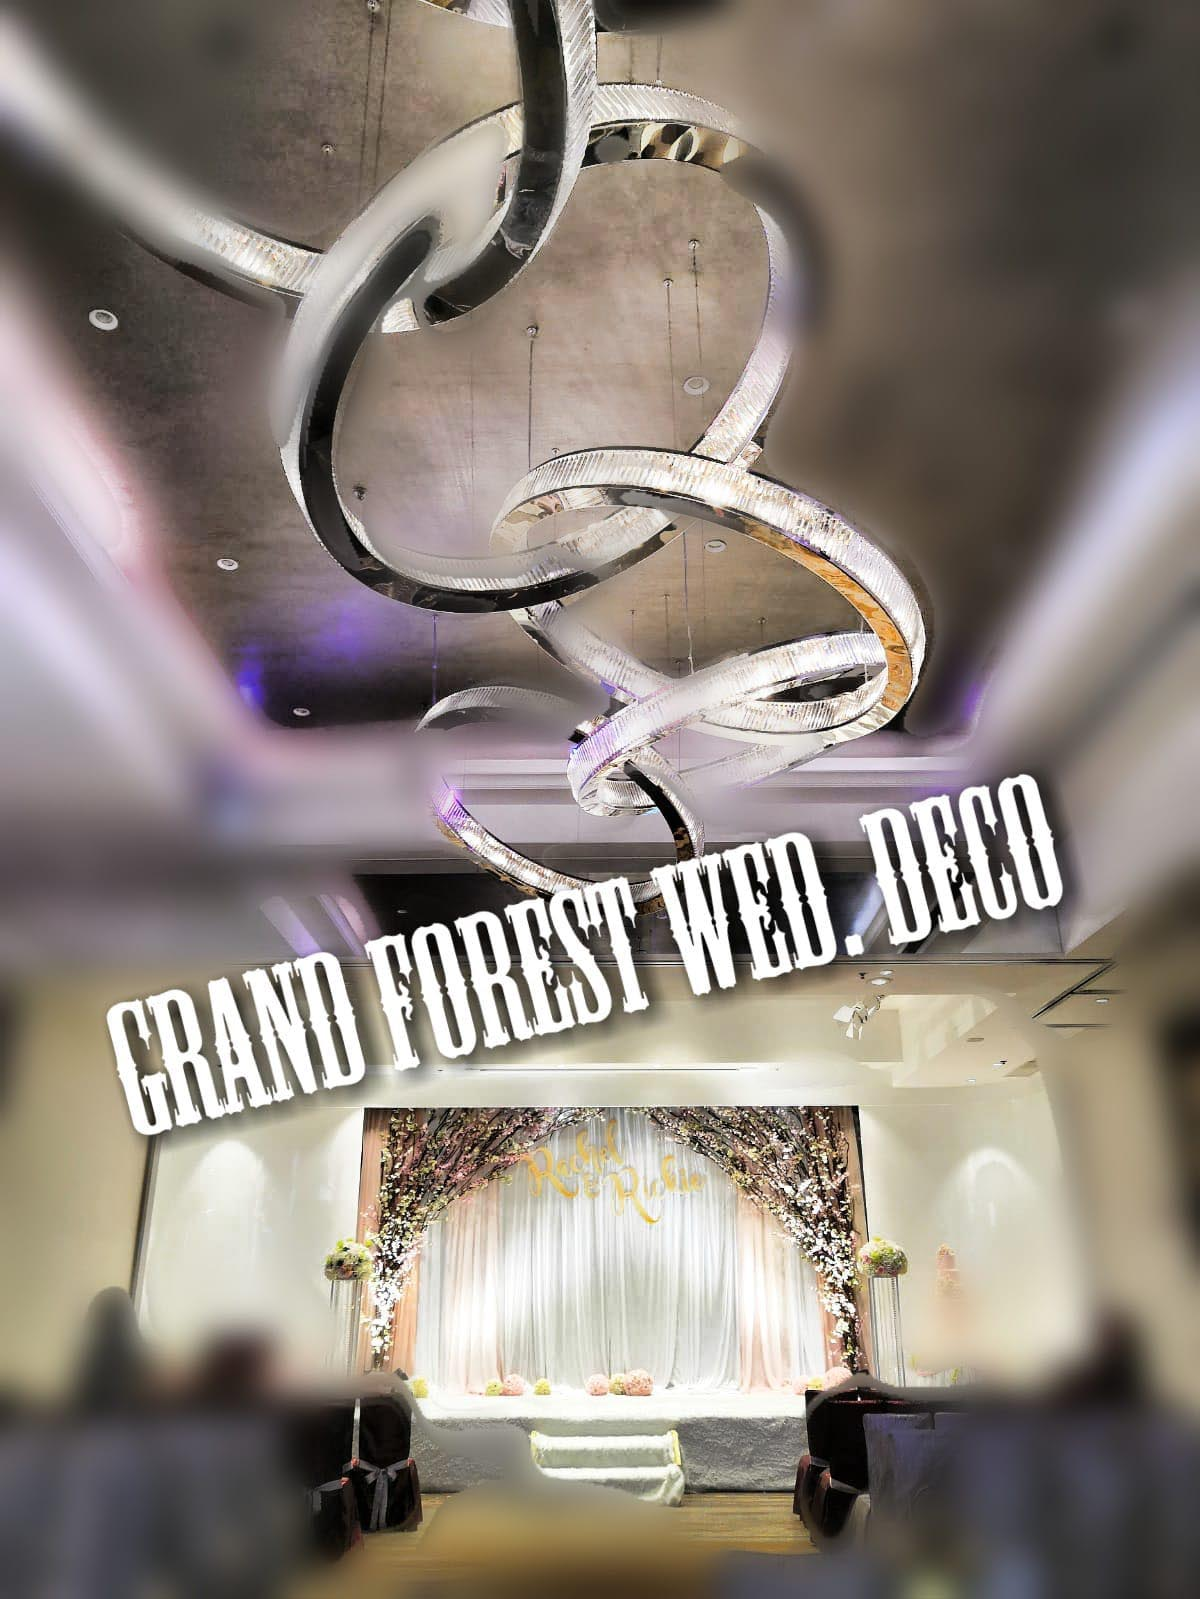 Grand Forest Event Deco